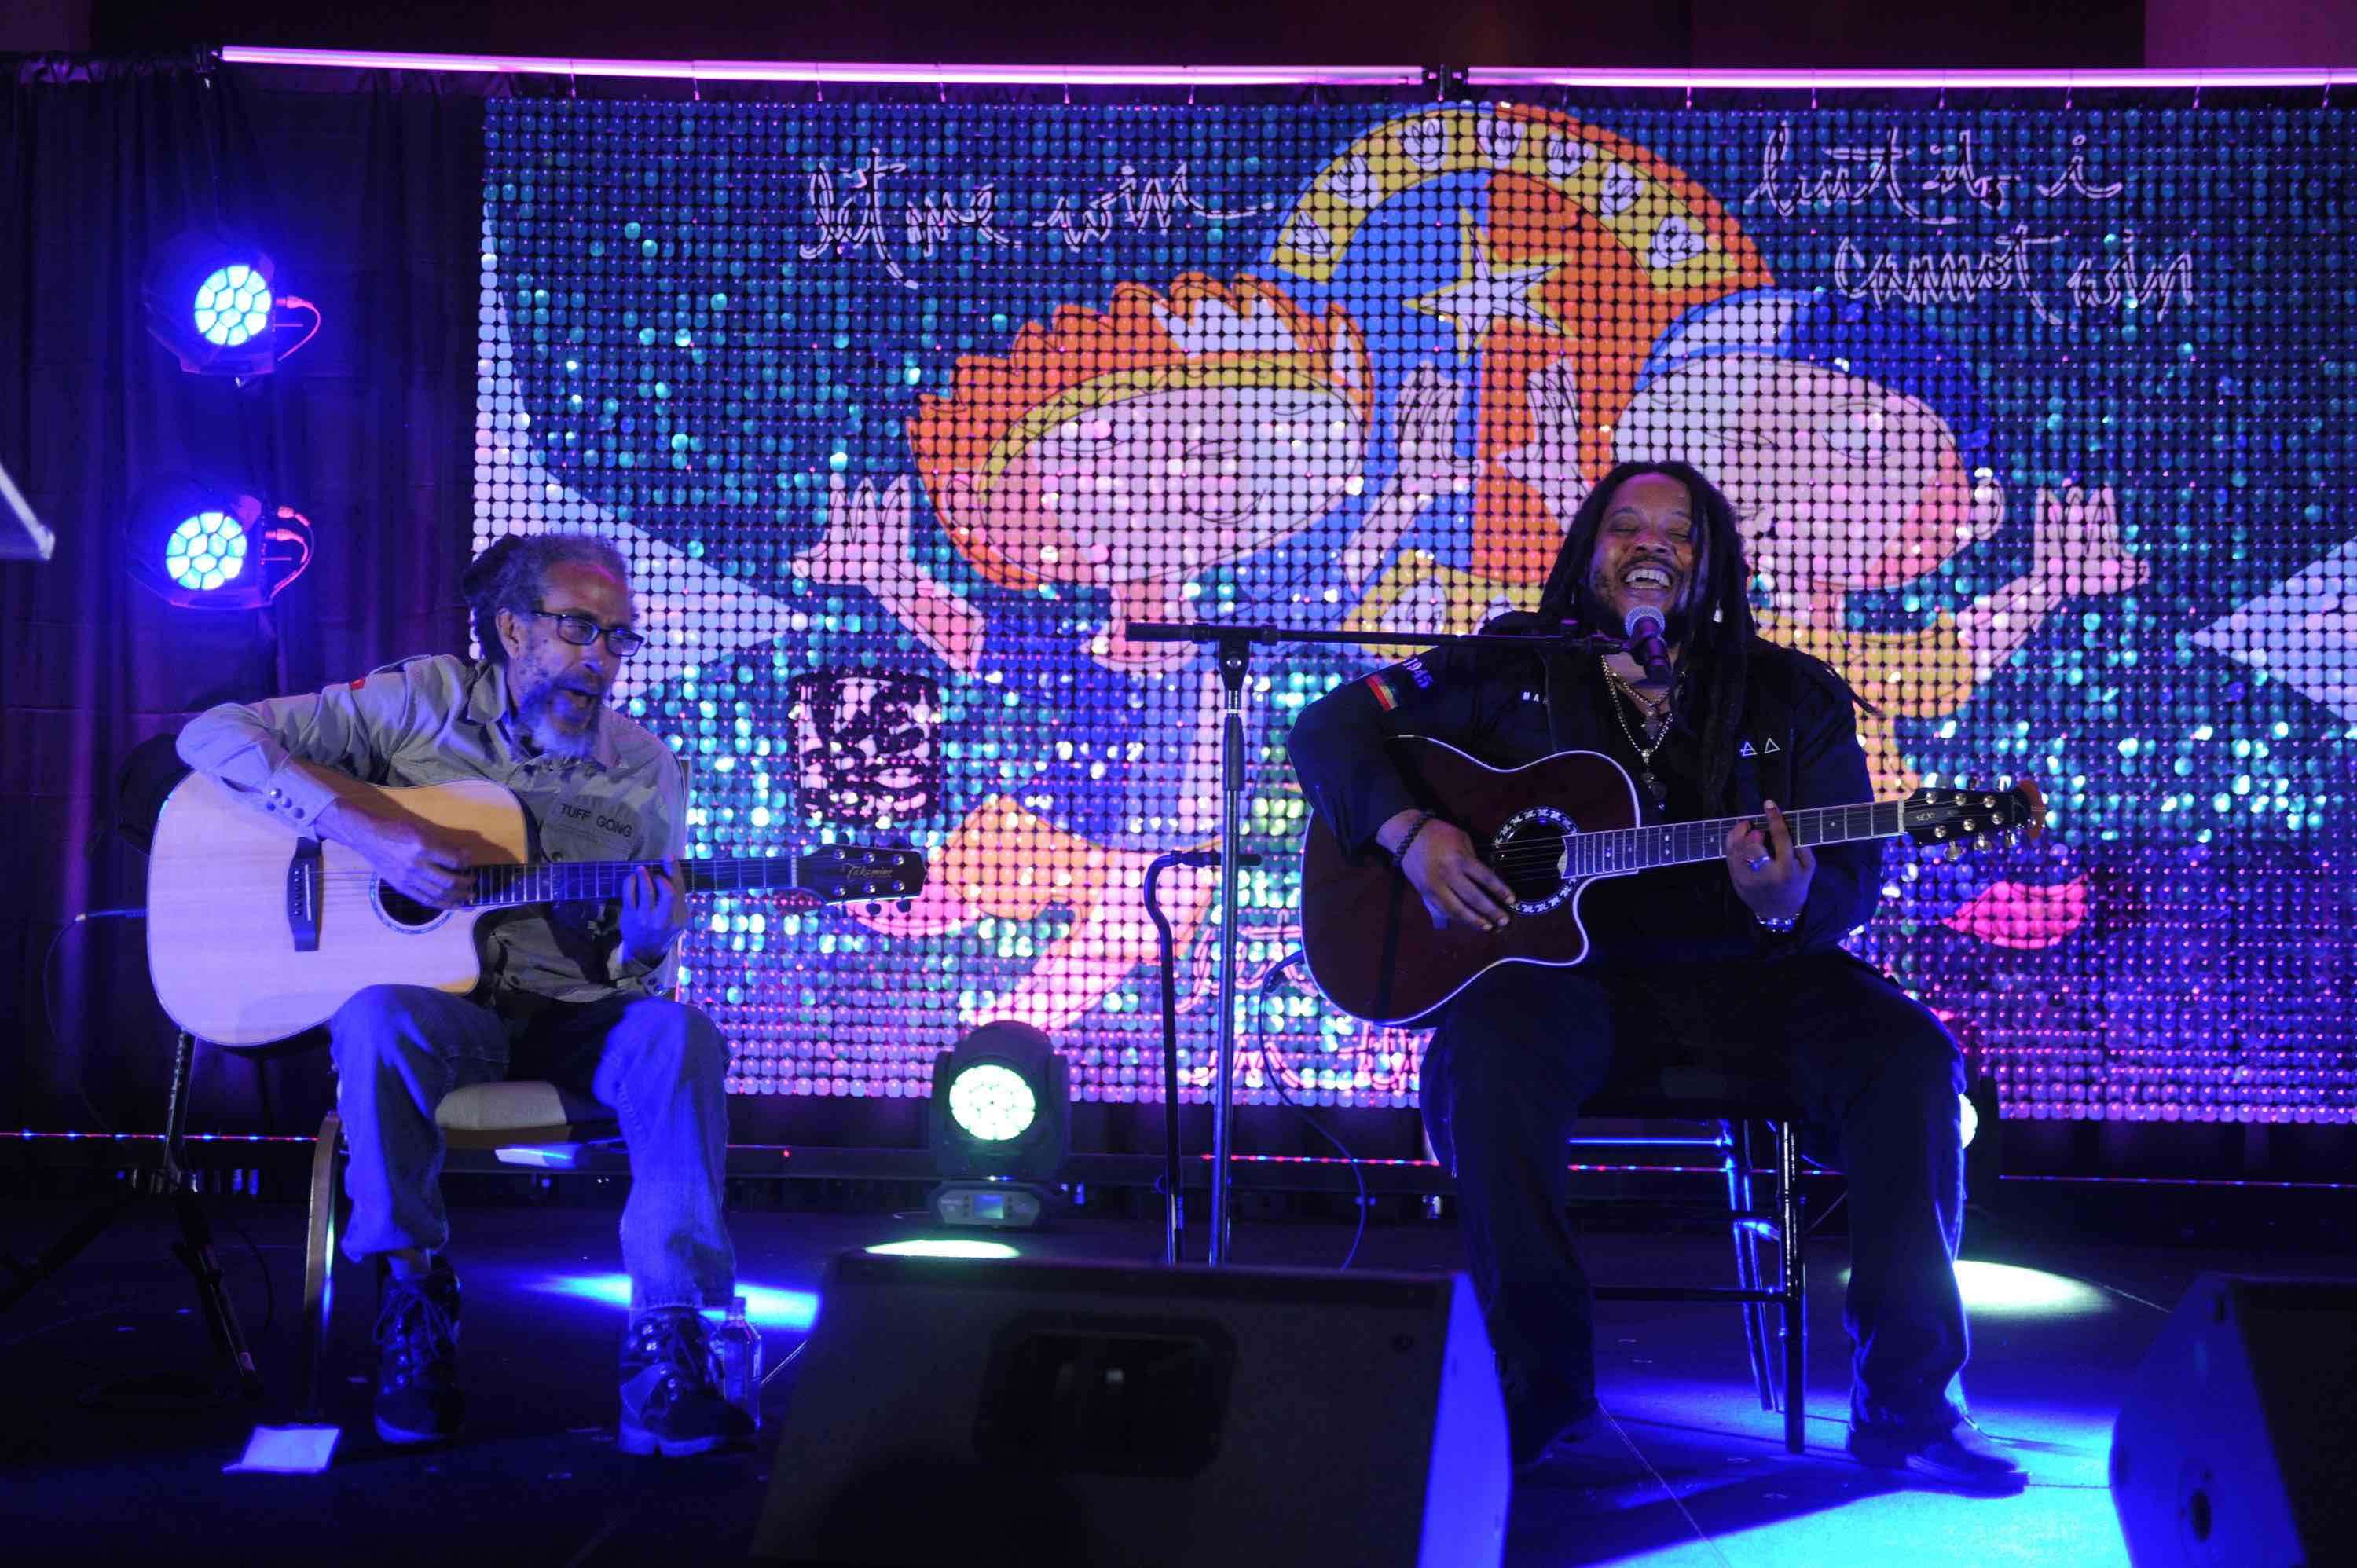 Stephen Marley performing